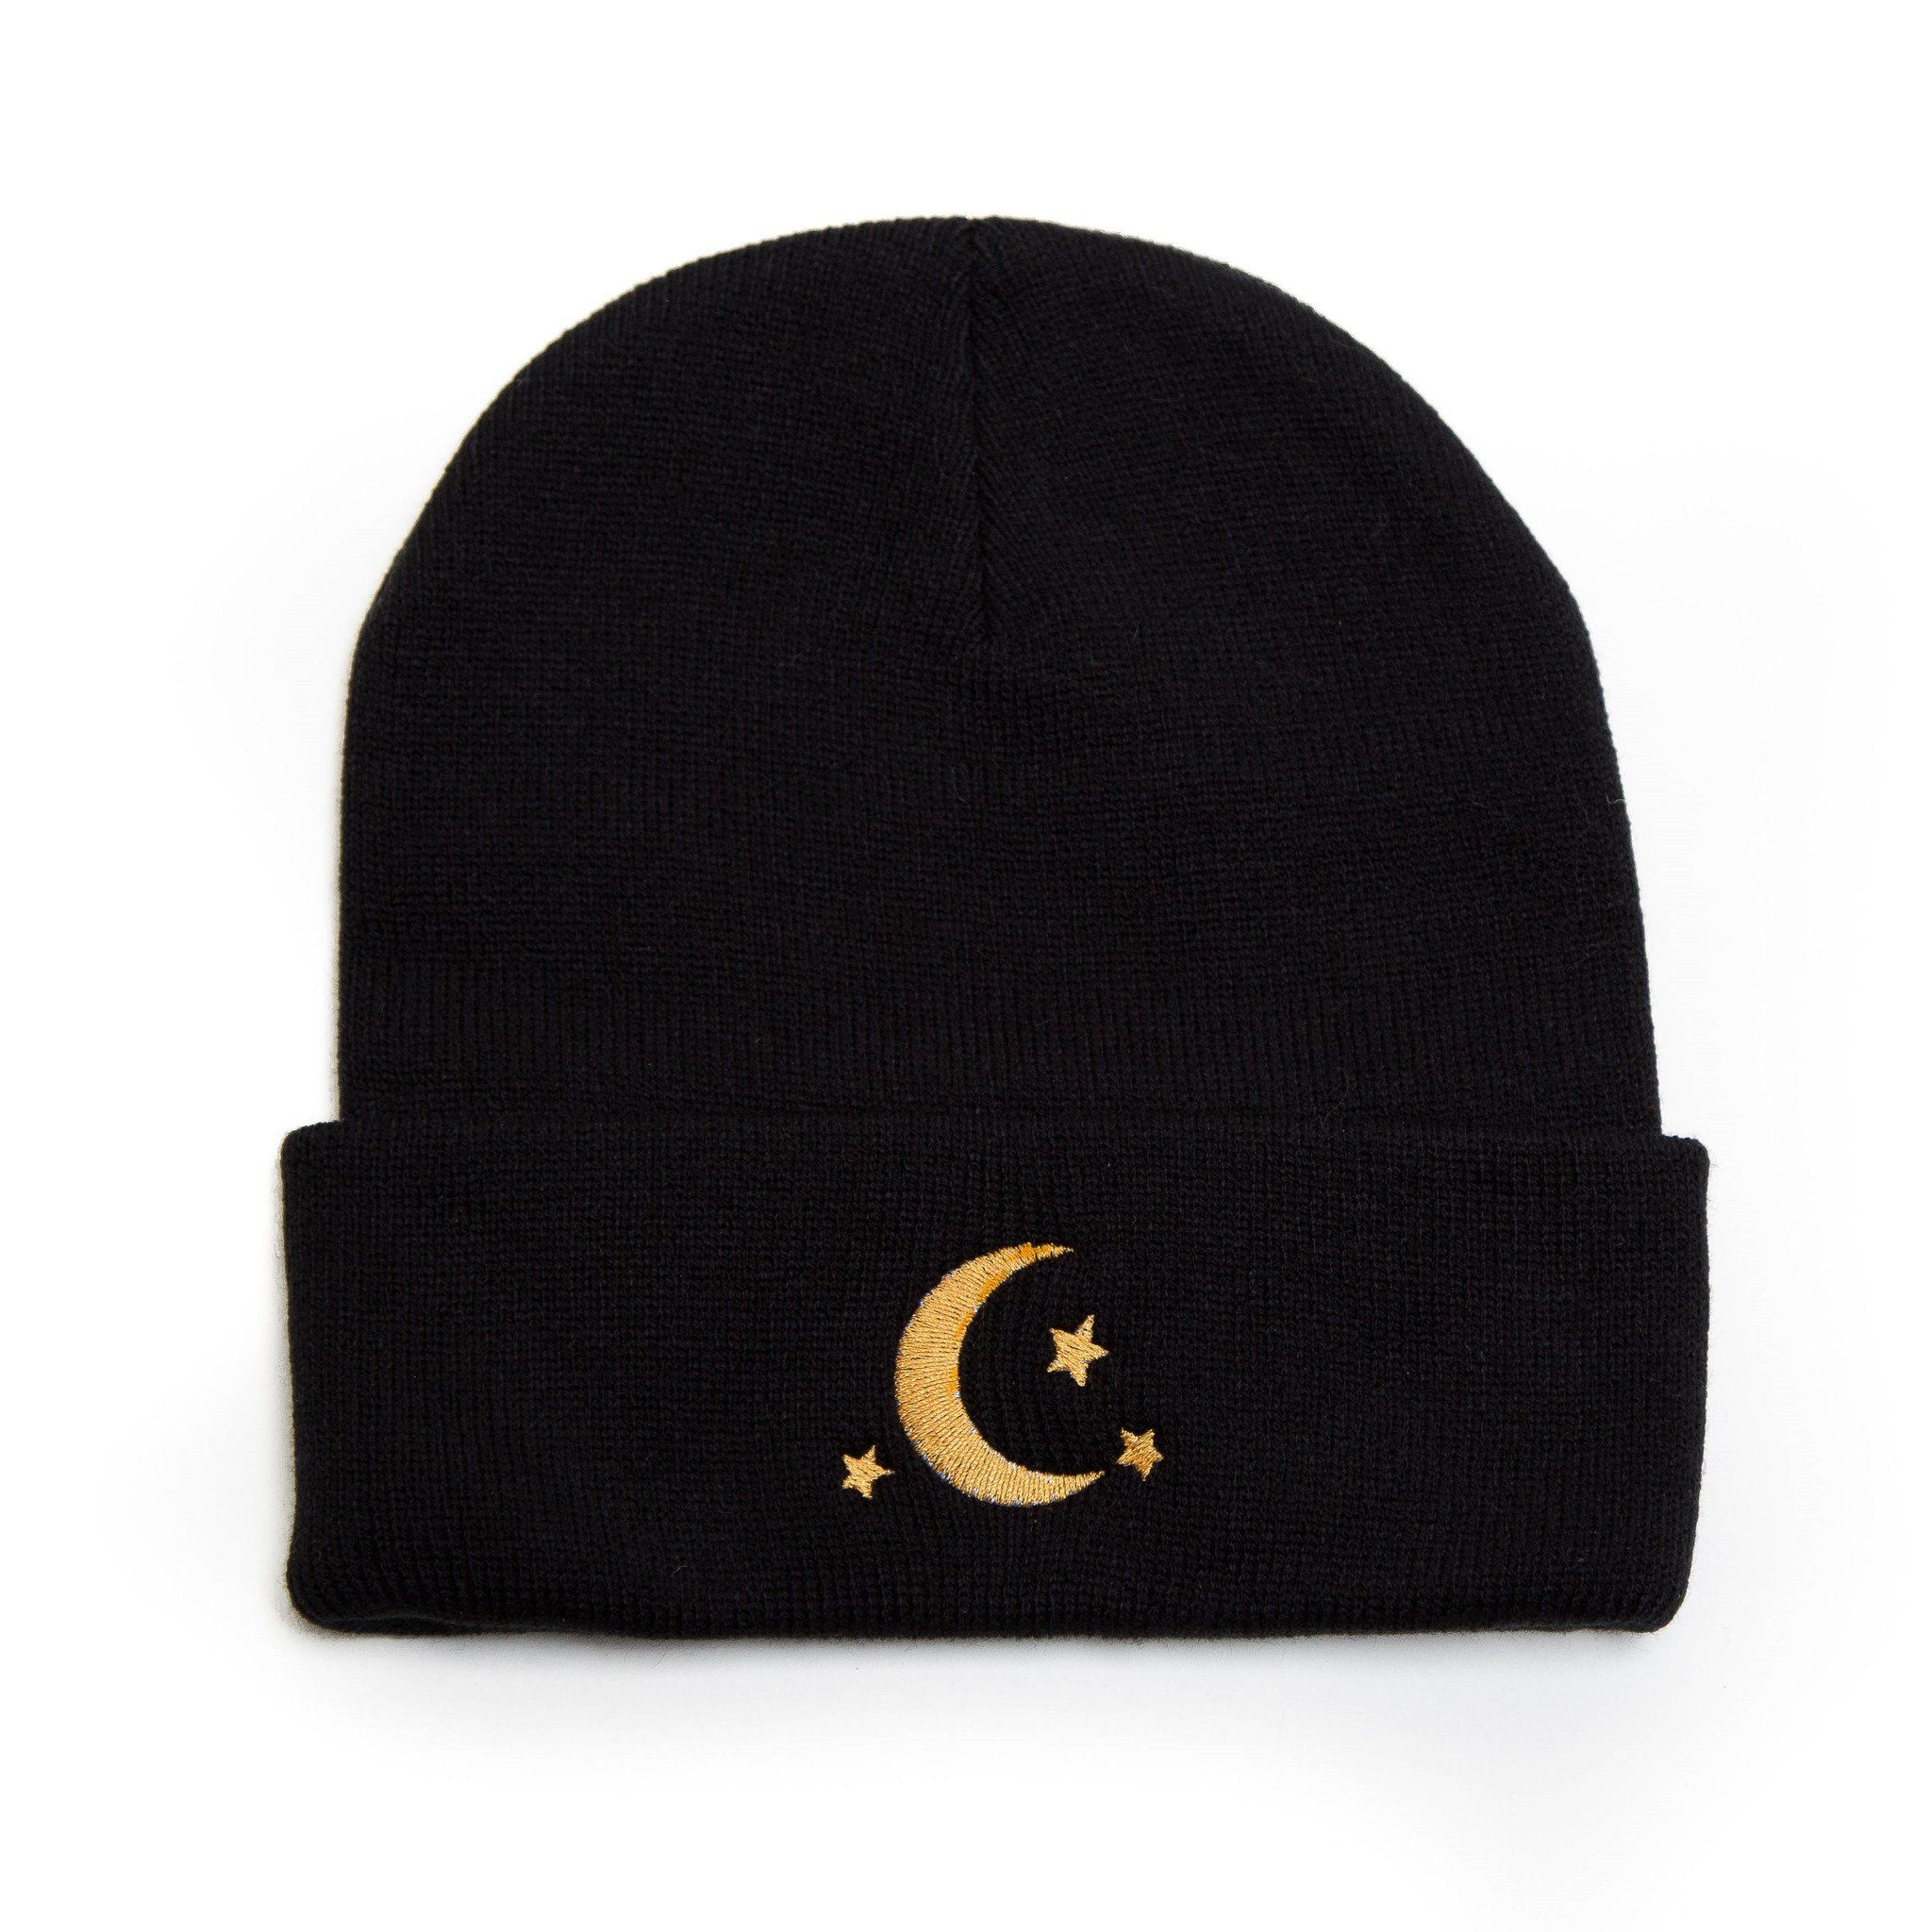 Crescent Moon Stars Embroidered Beanie